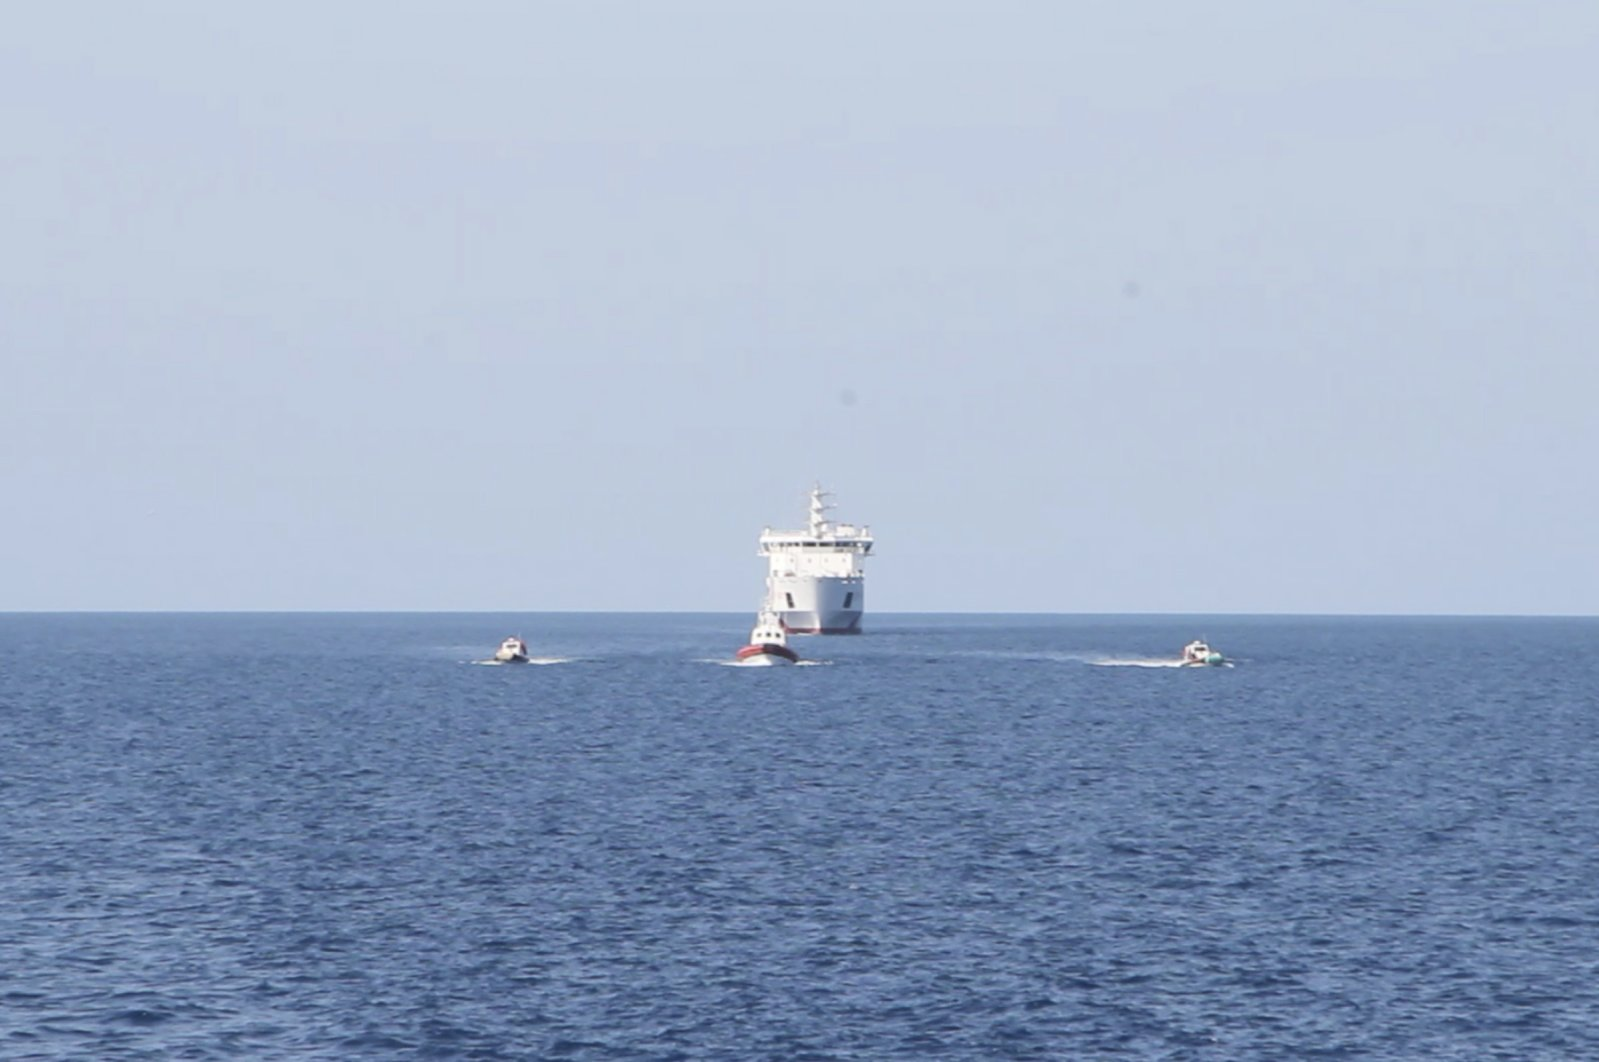 The Alan Kurdi rescue ship carrying migrants saved from sinking in the Mediterranean approaches a ferry, seen in the background's center, for a 14-day quarantine, April 17, 2020. (AP Photo)